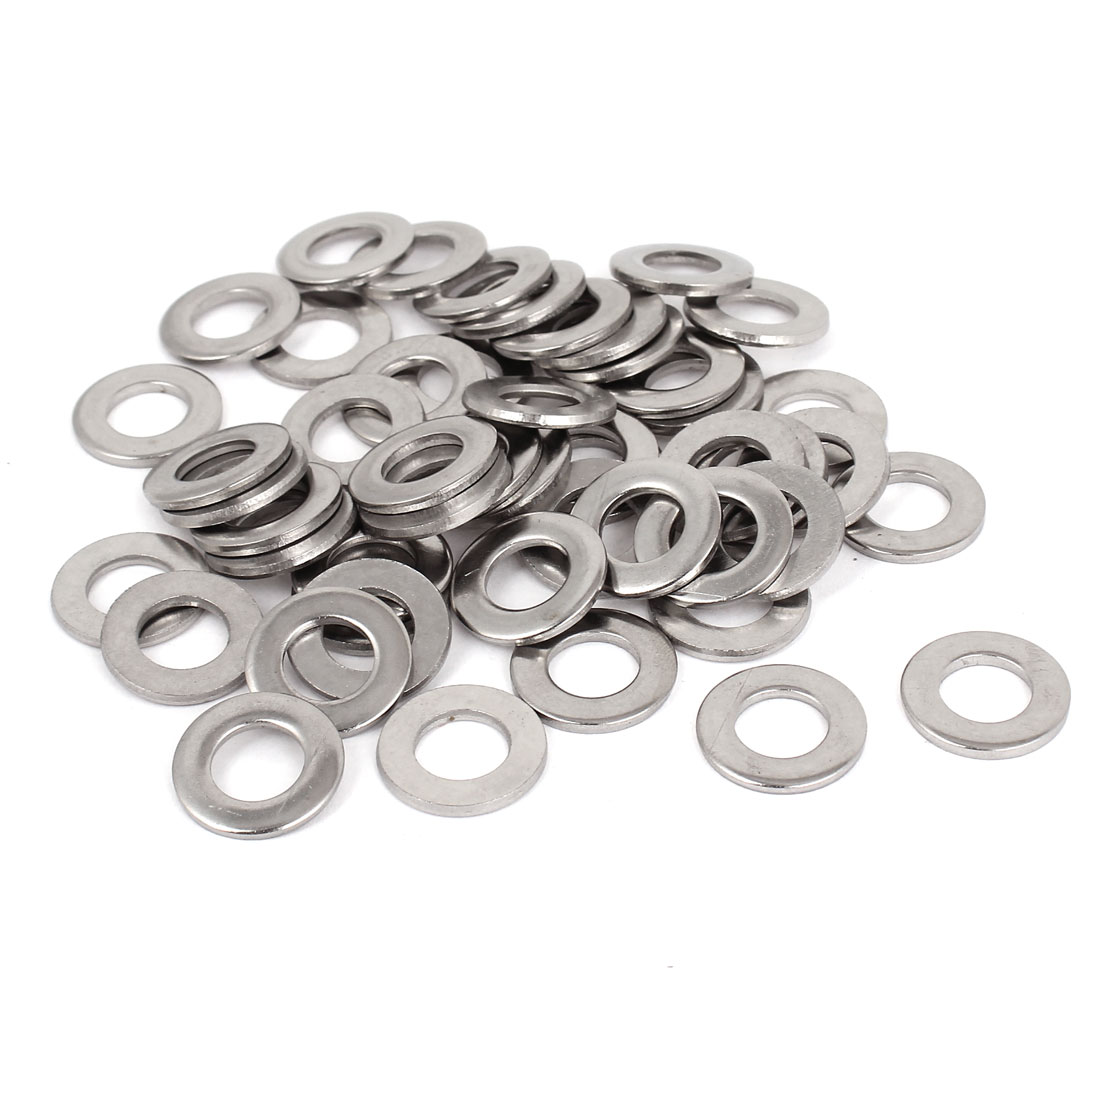 "50pcs Silver Tone 316 Stainless Steel Flat Washer 3/8"" for Screws Bolts"